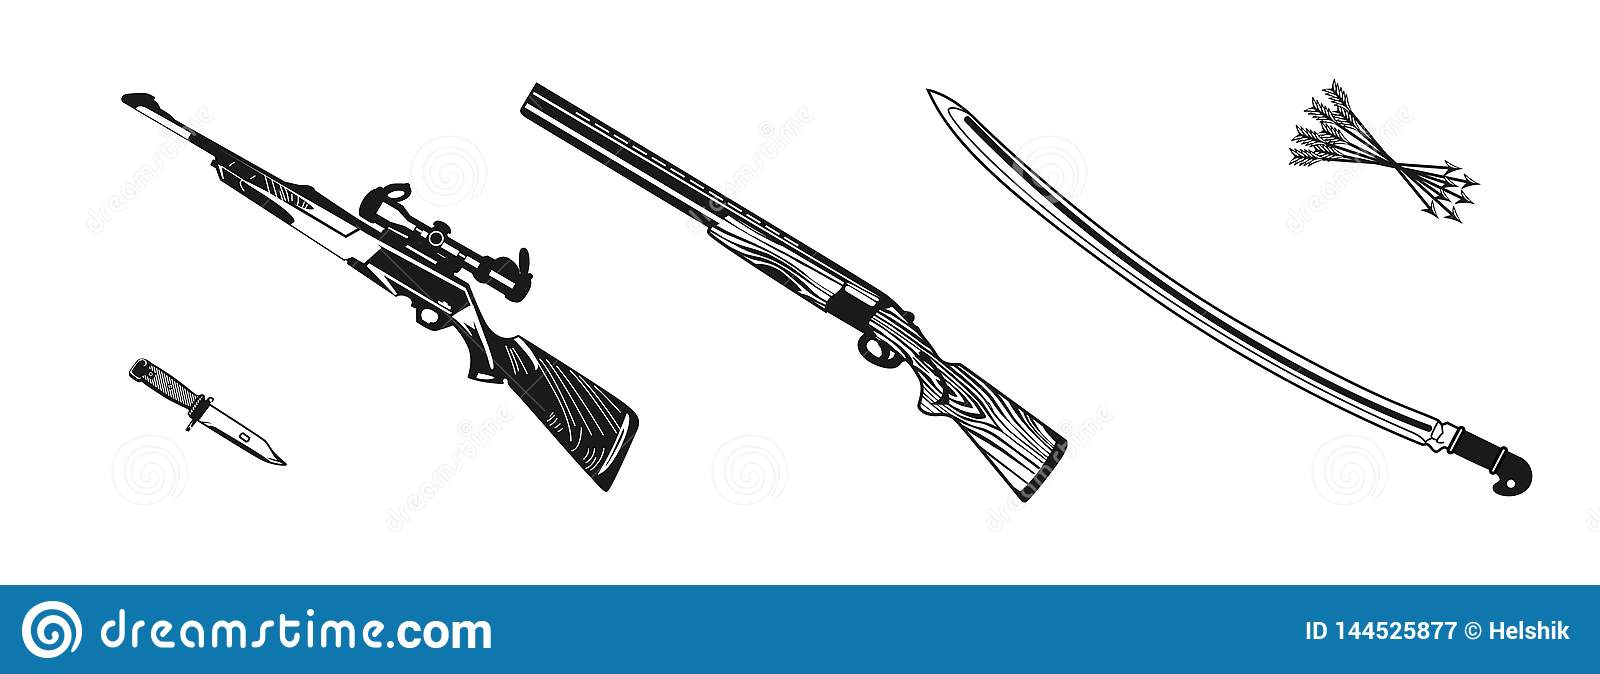 Vector illustration huntings rifle colored, black and white, silhouette